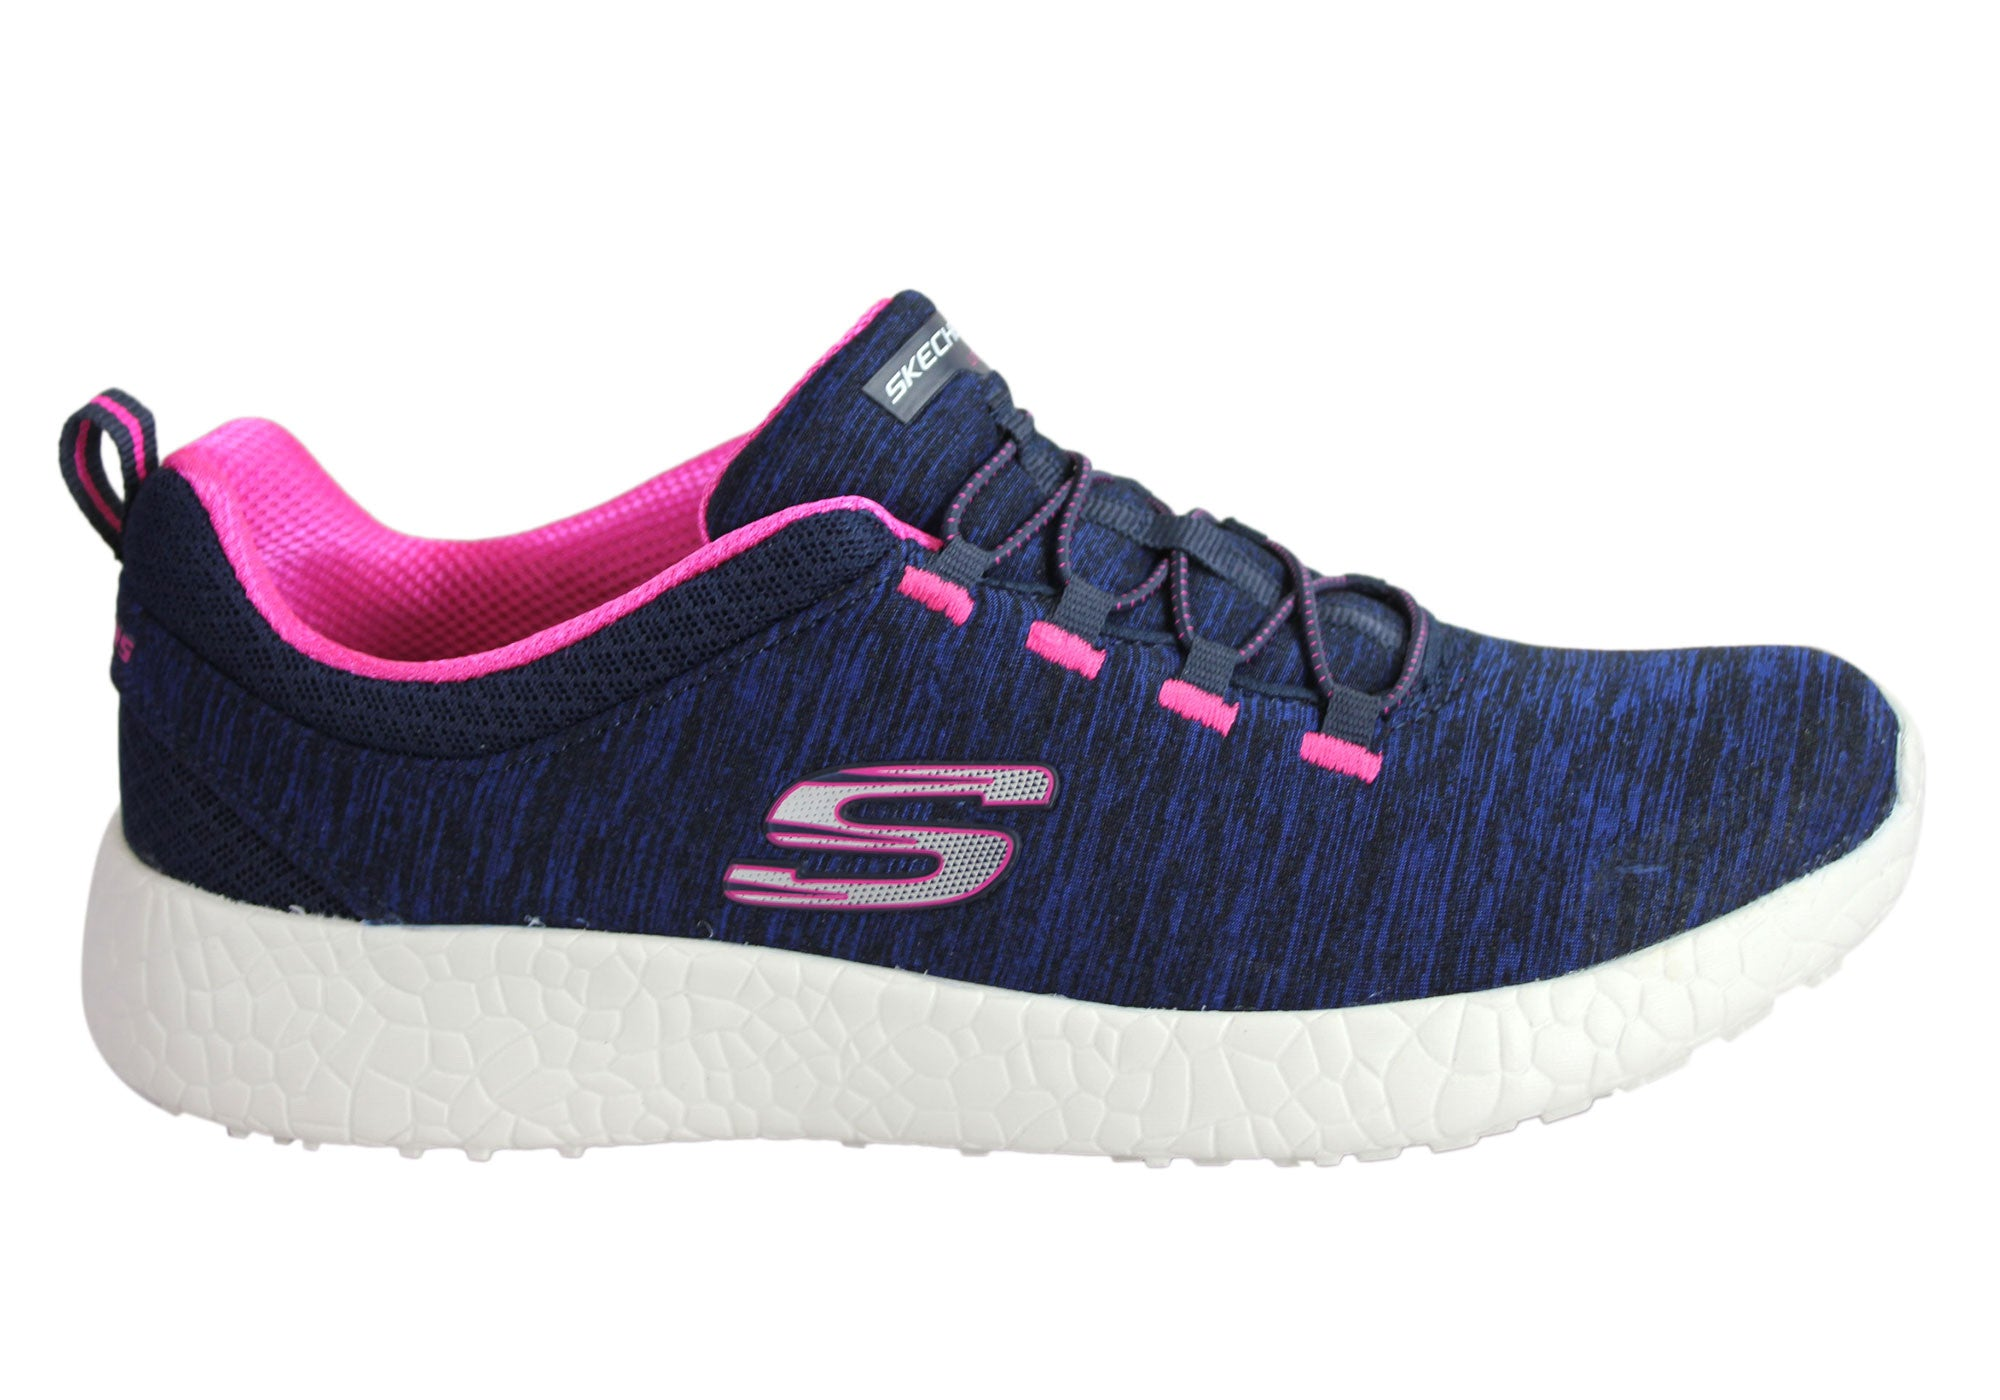 skechers burst air cooled memory foam